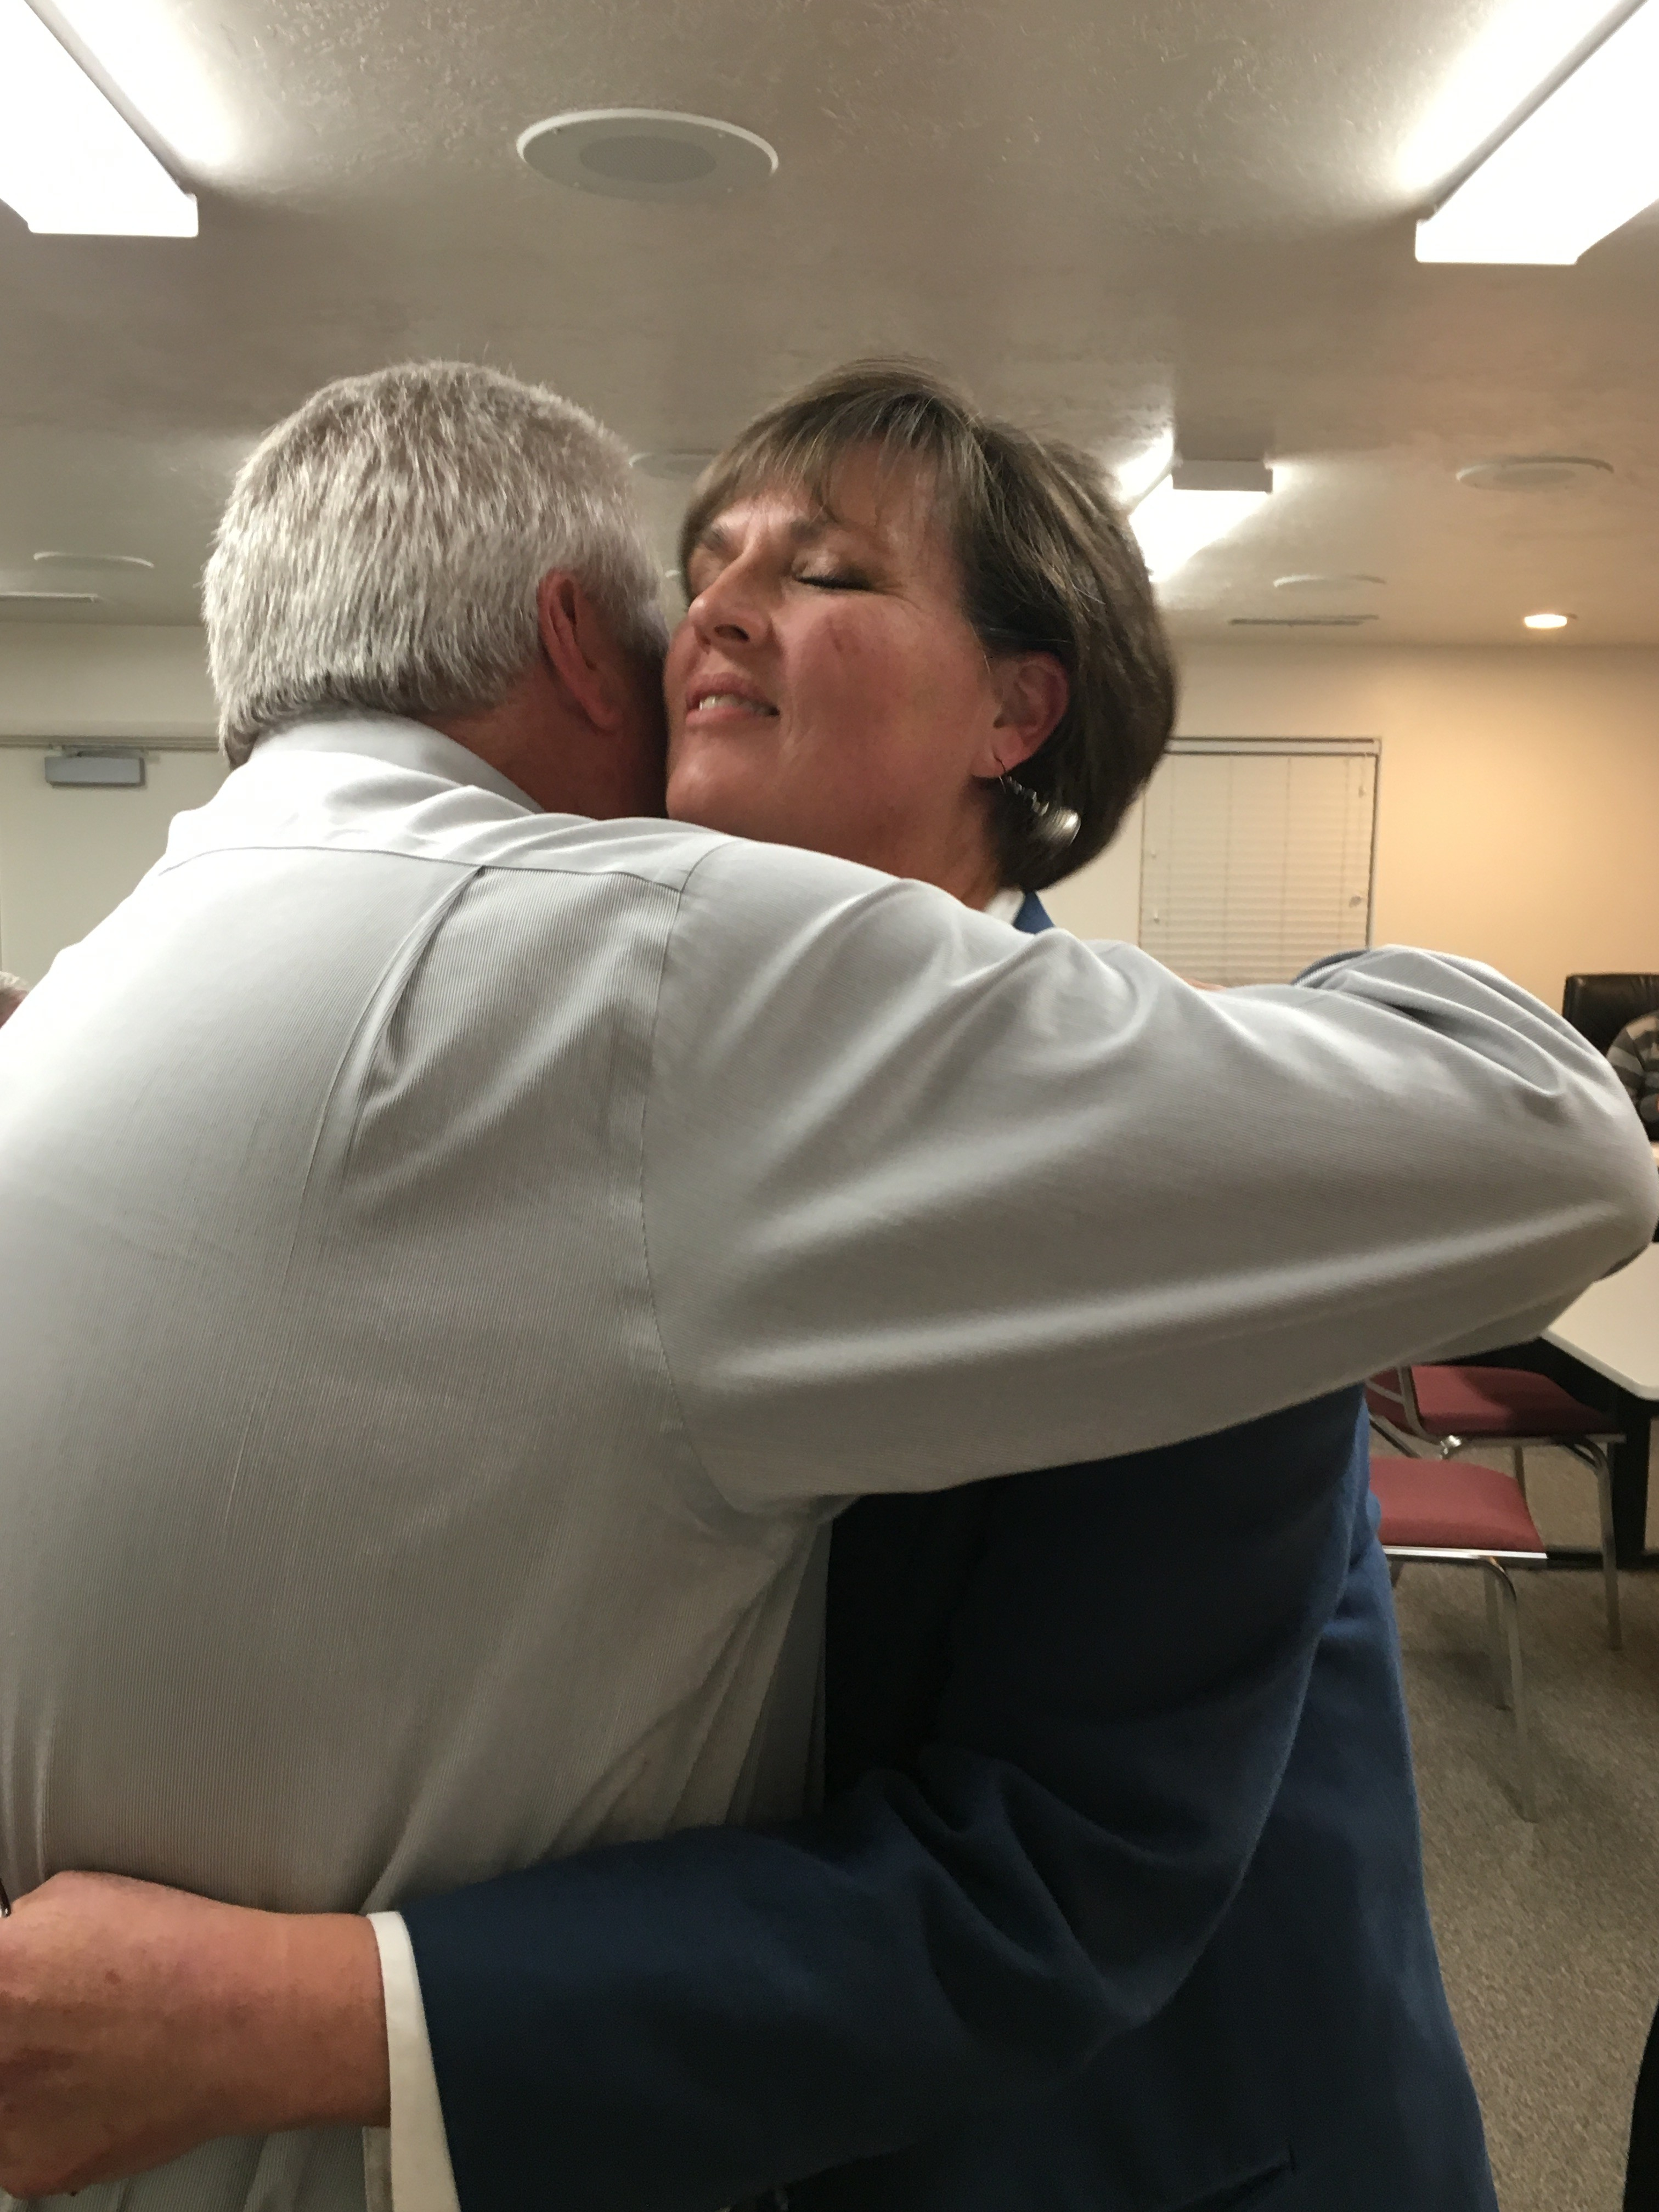 New Enoch City Councilwoman Jolene Lee hugs her husband after winning the coin toss Wednesday night in a tie between her and Scott Leel. Enoch City, Utah, March 2, 2016 | Photo by Tracie Sullivan, Cedar City News